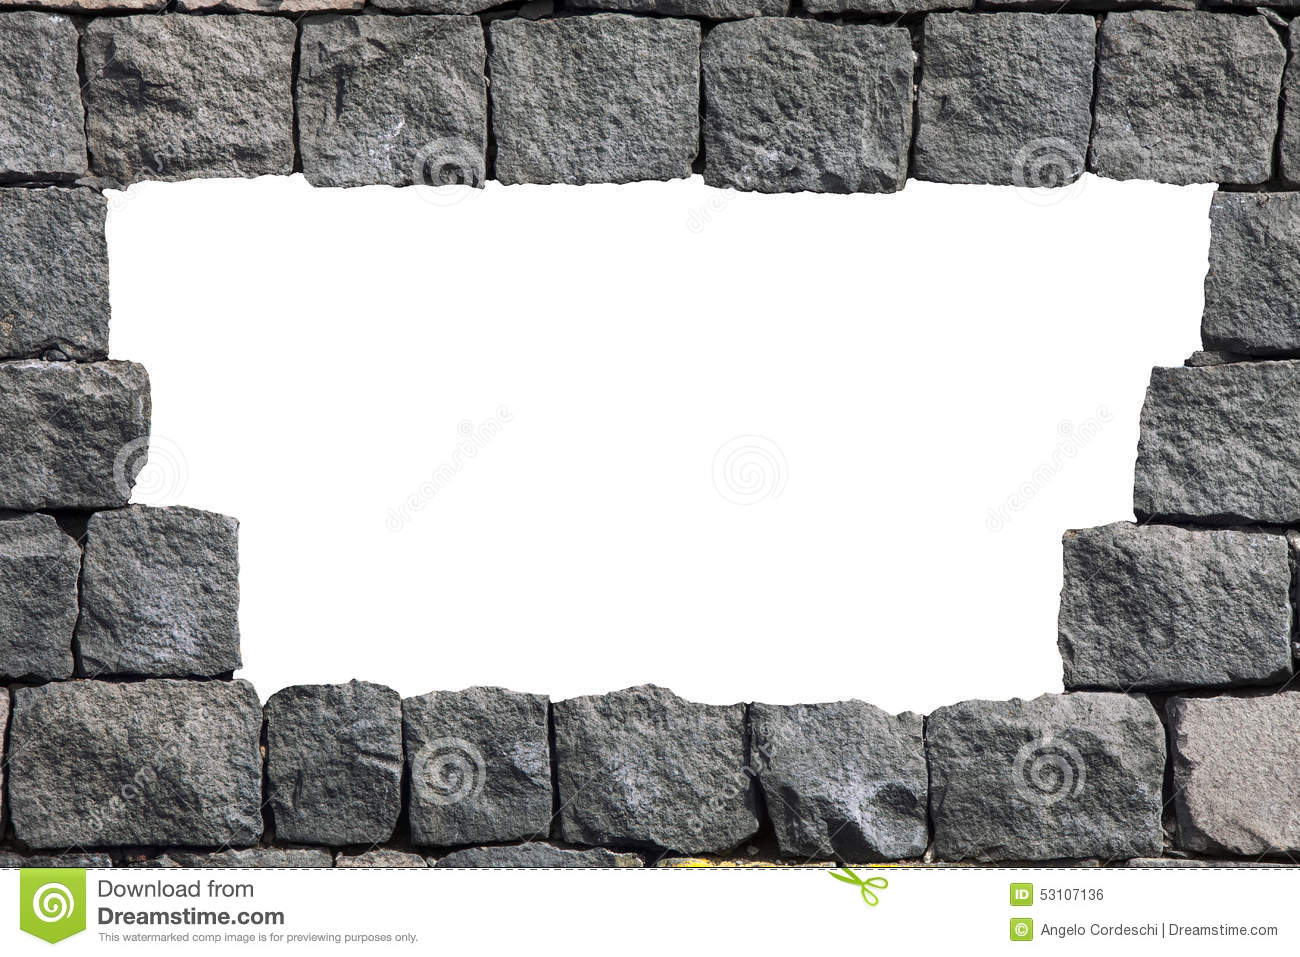 Laterite stone brick wall stock images image 35510874 - Wall Of Lava Stone With White Space In The Middle Frame Brick Wall Laterite Stone Brick Wall Stock Images Image 35510874